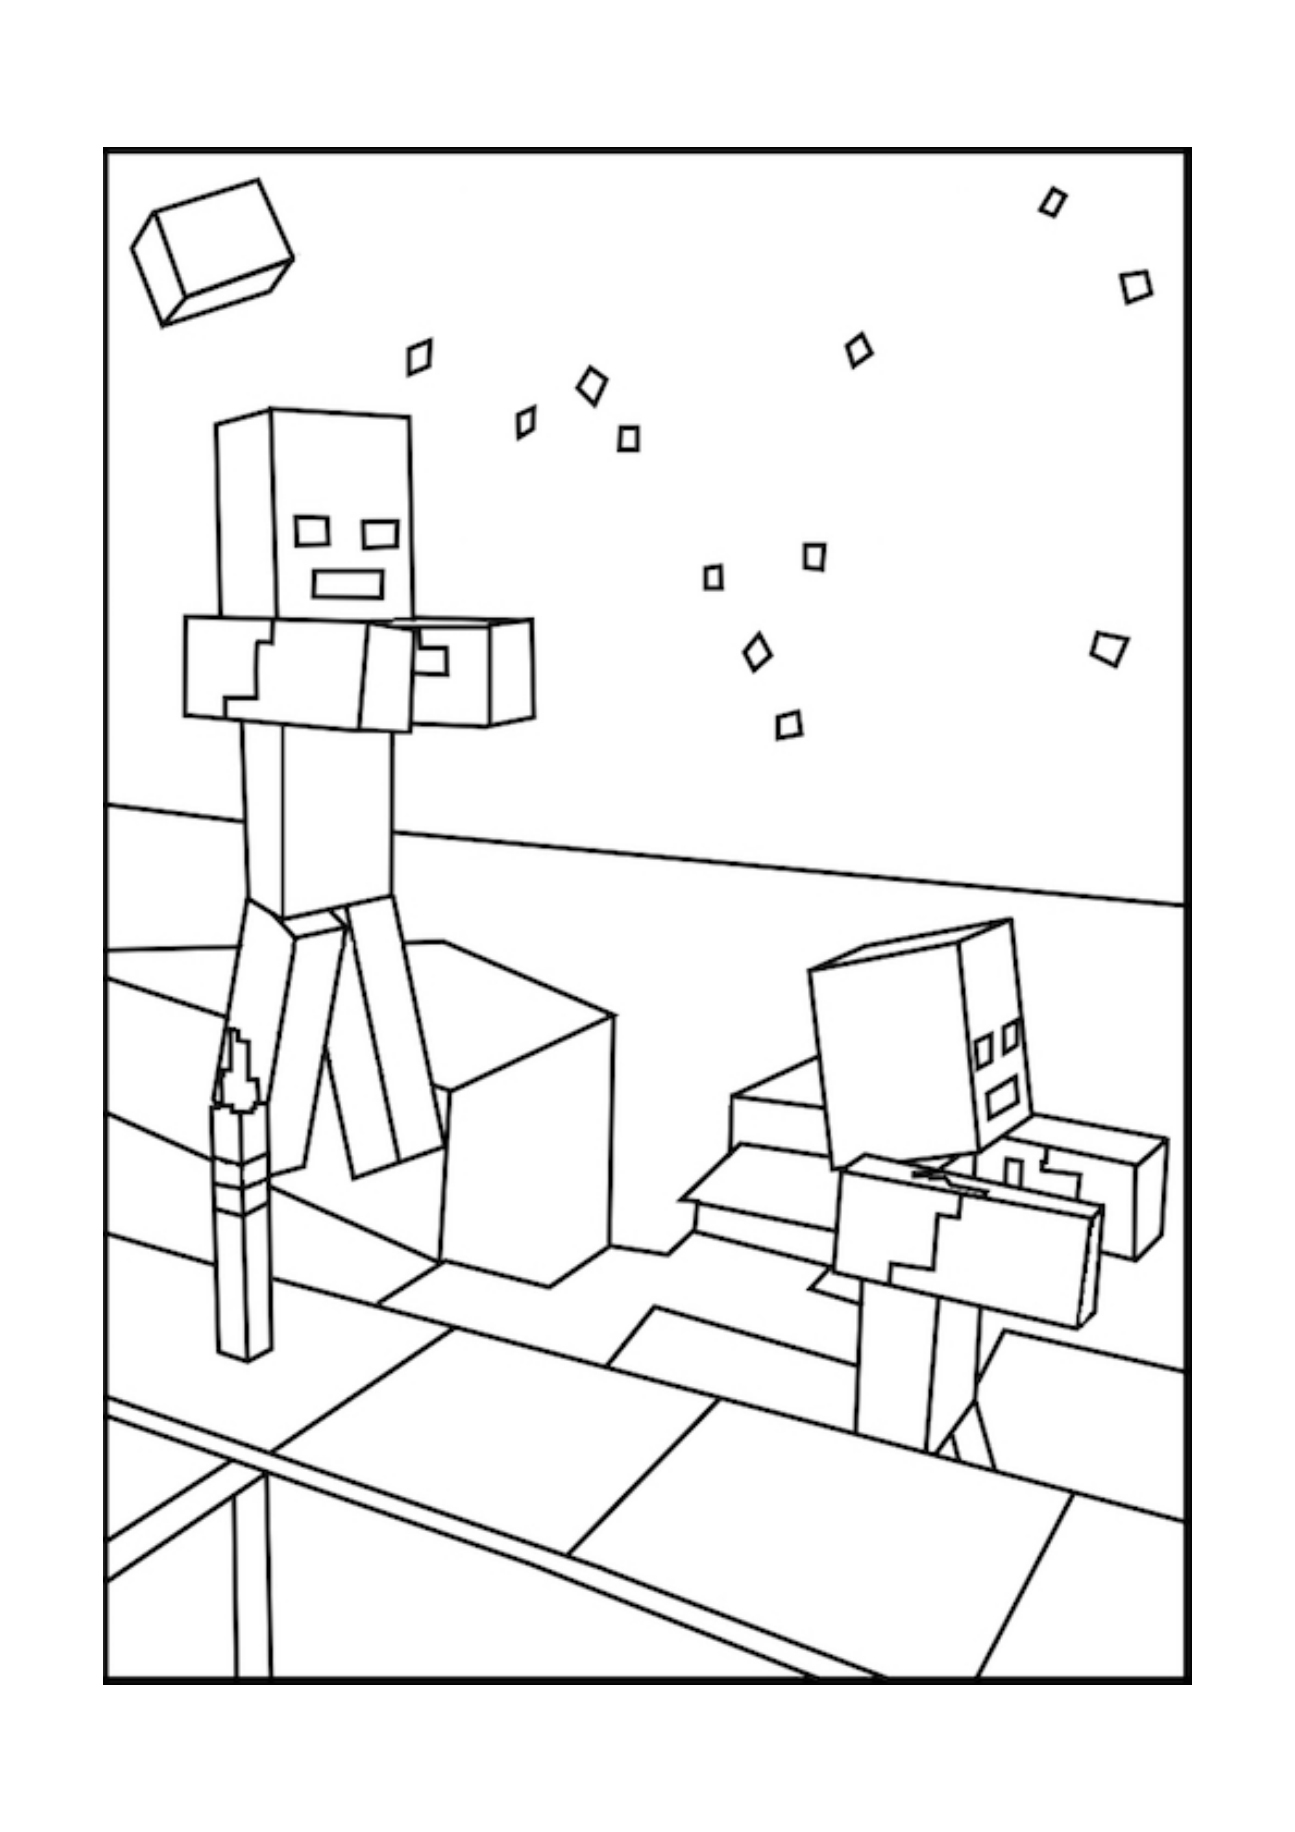 coloring zombie minecraft minecraft zombie coloring pages at getcoloringscom free minecraft zombie coloring